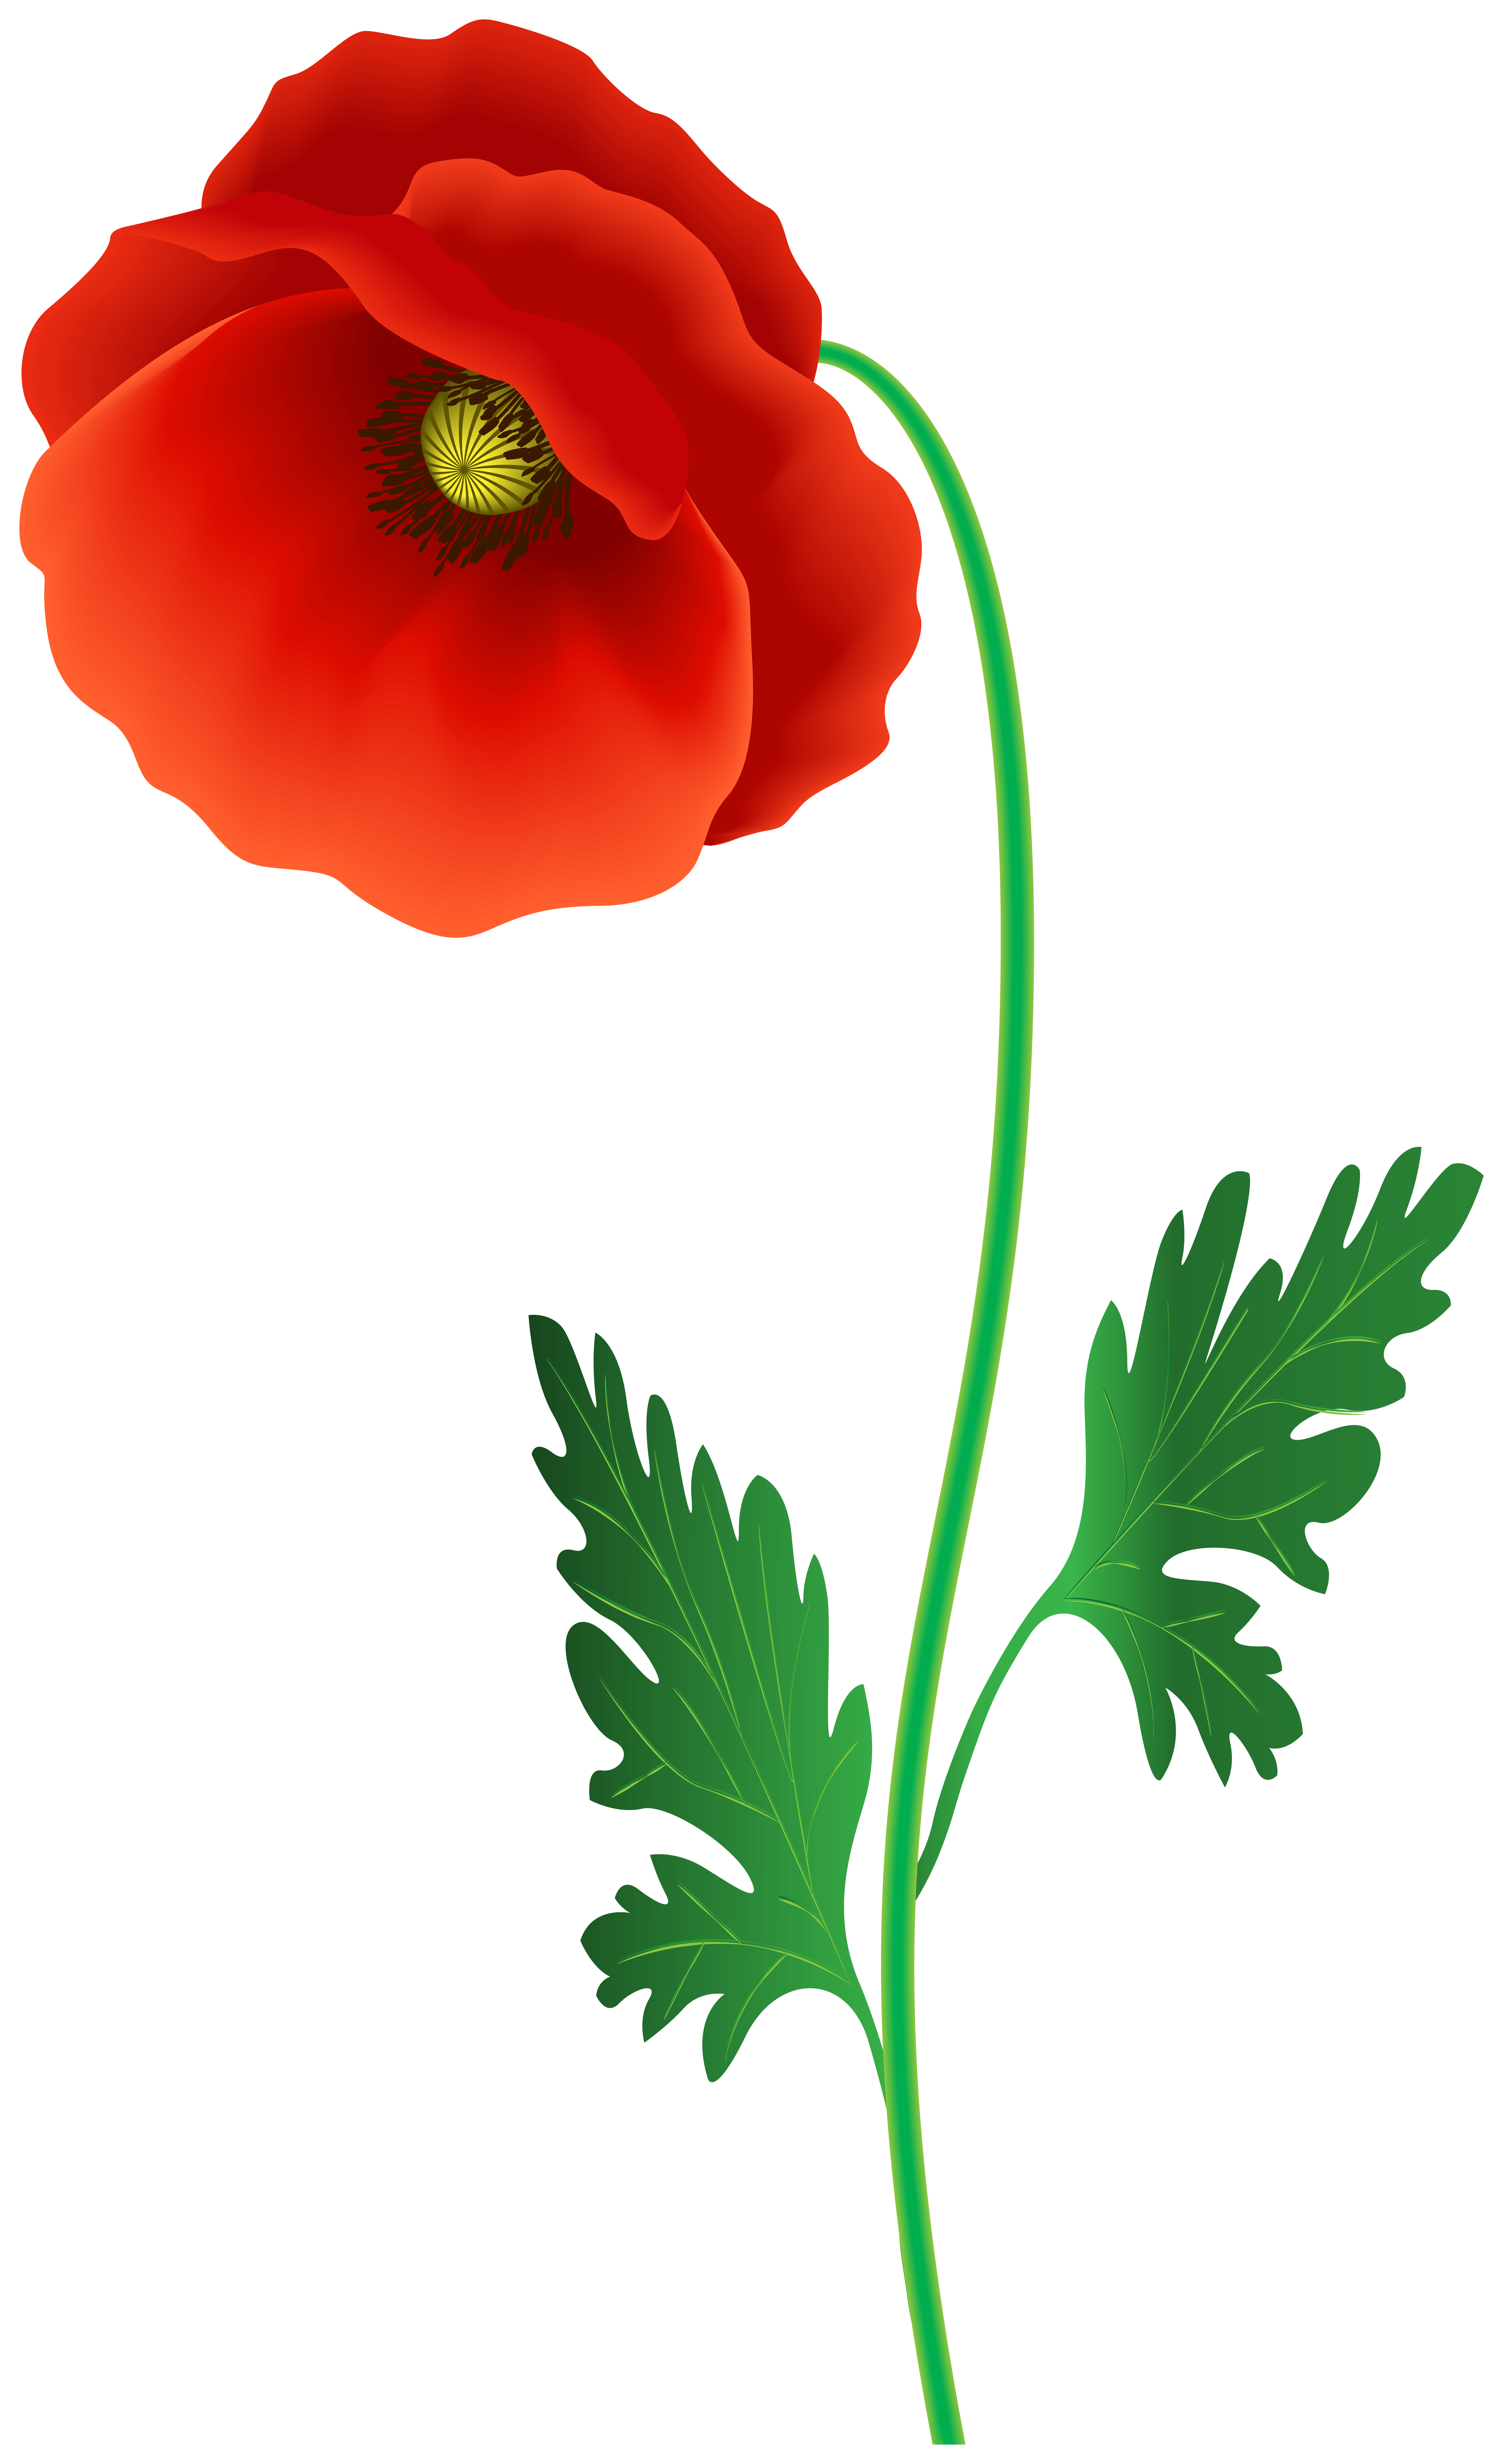 Poppy Flower PNG Clipart Image.